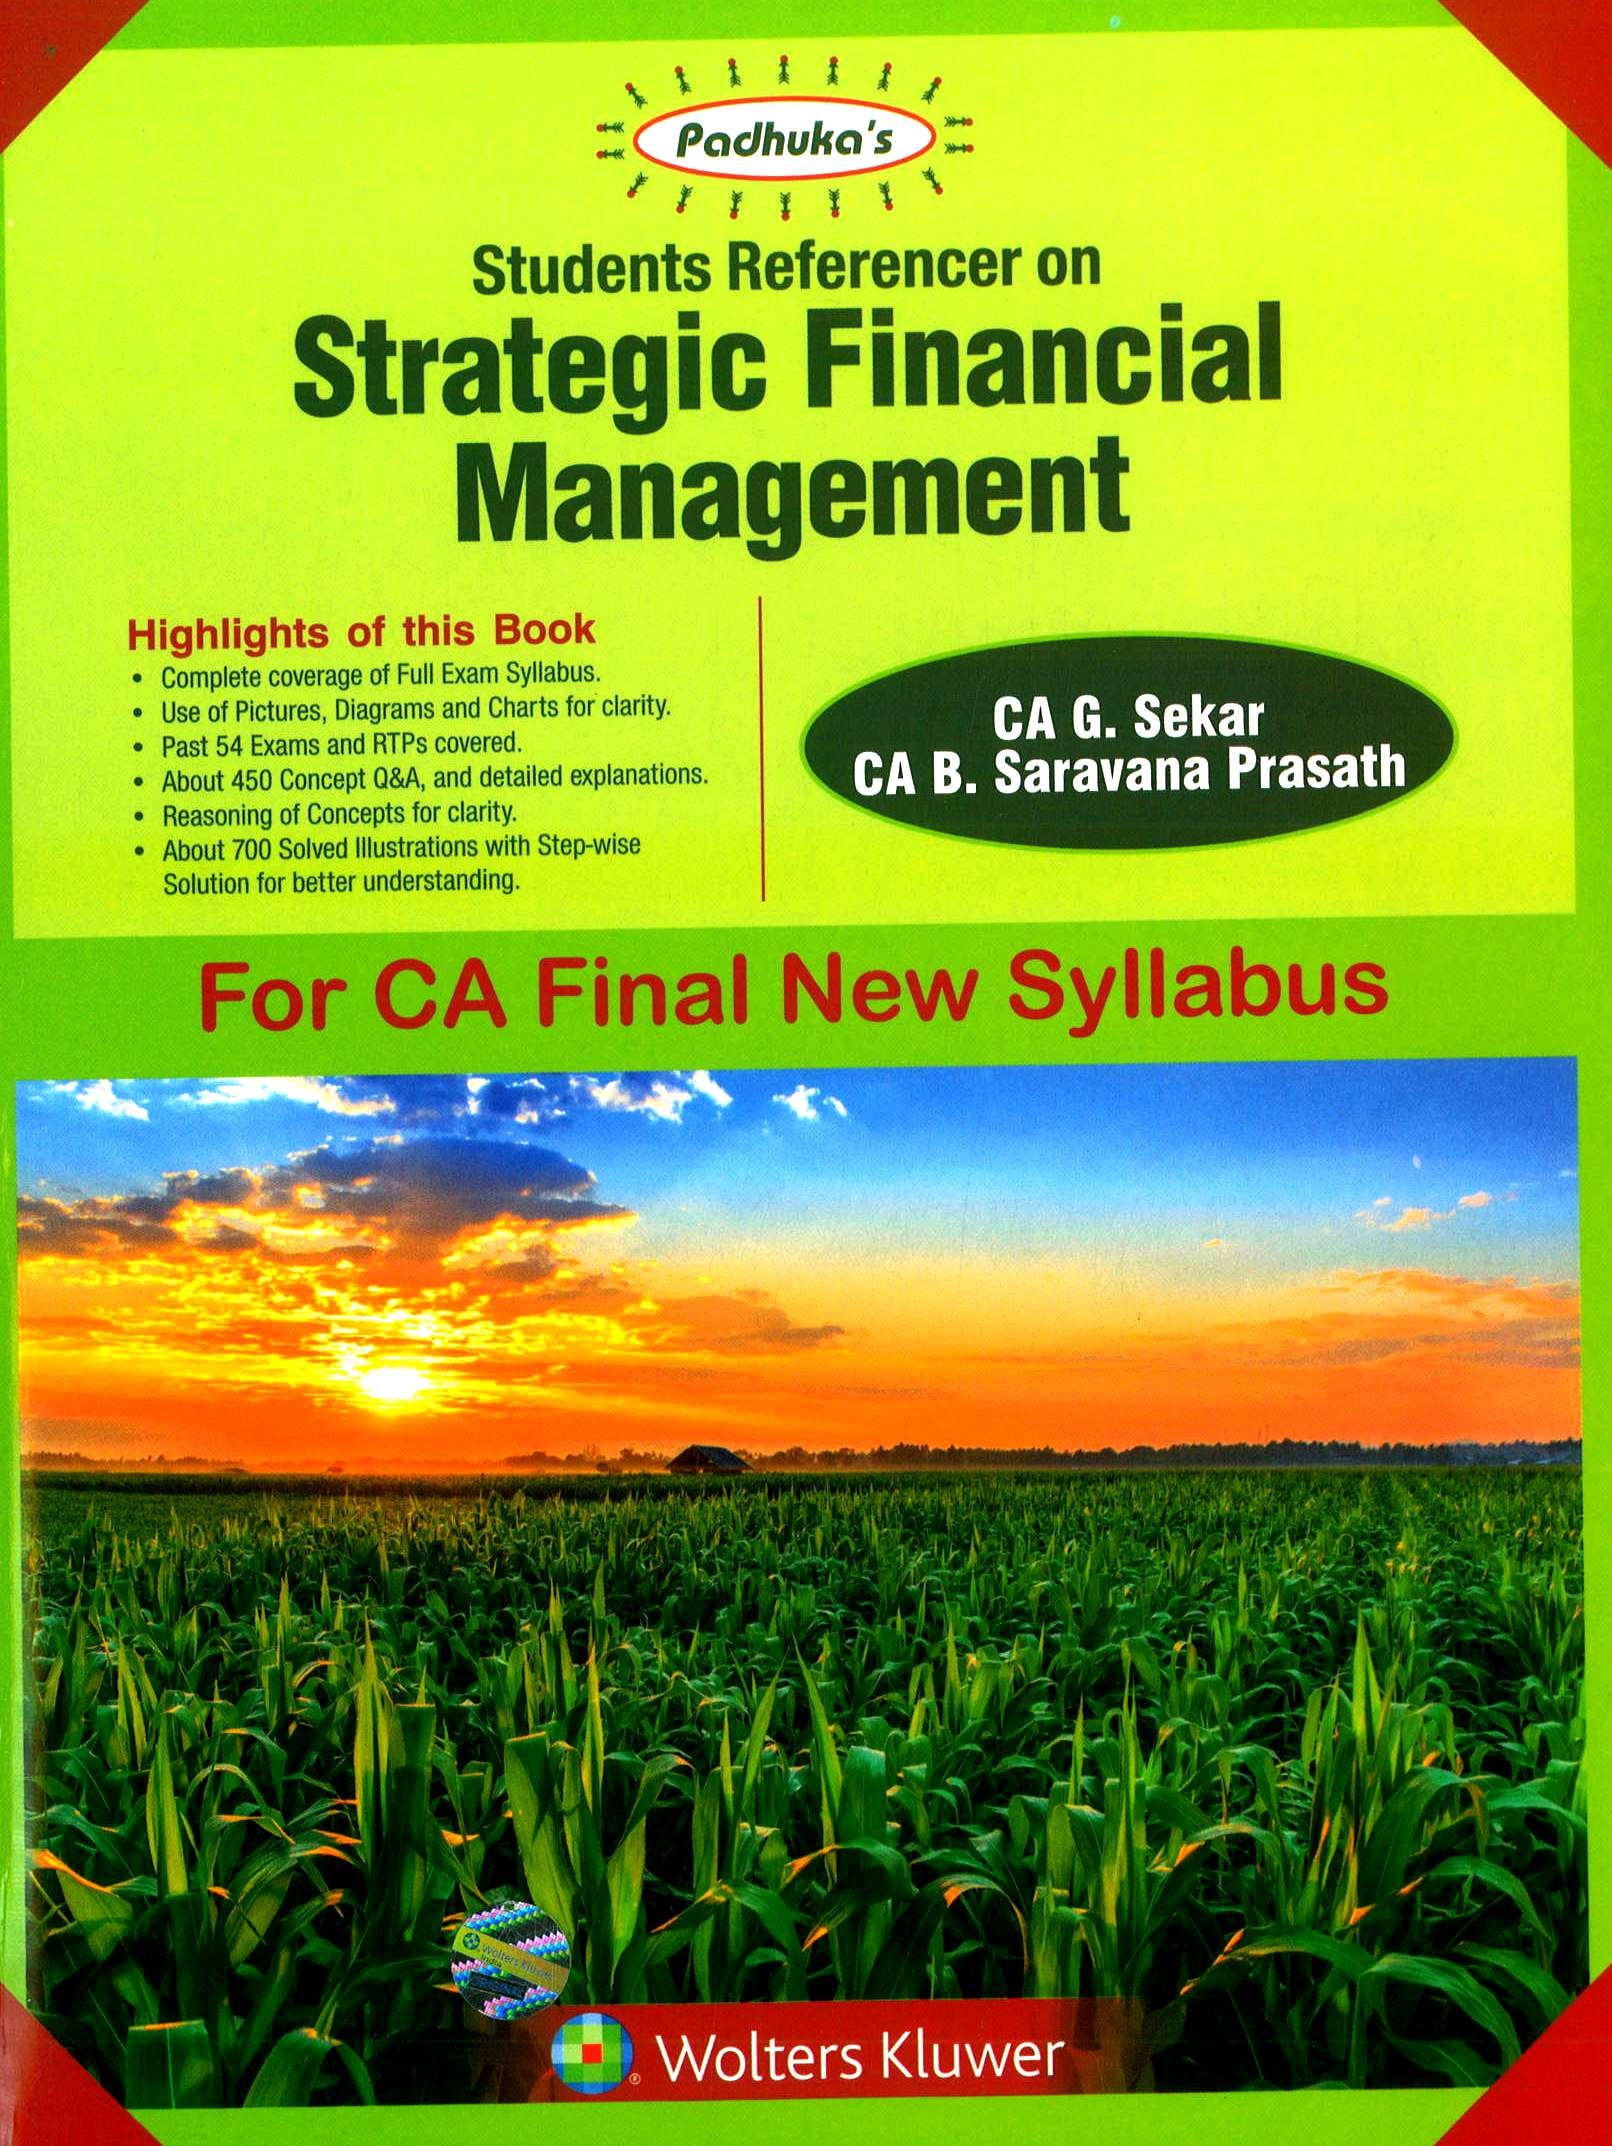 CCH Padhuka Students Referencer on Strategic Financial Management For CA Final New Syllabus CA Final by G Sekar , B Sarvana Prasath Applicable for May 2018 Exam